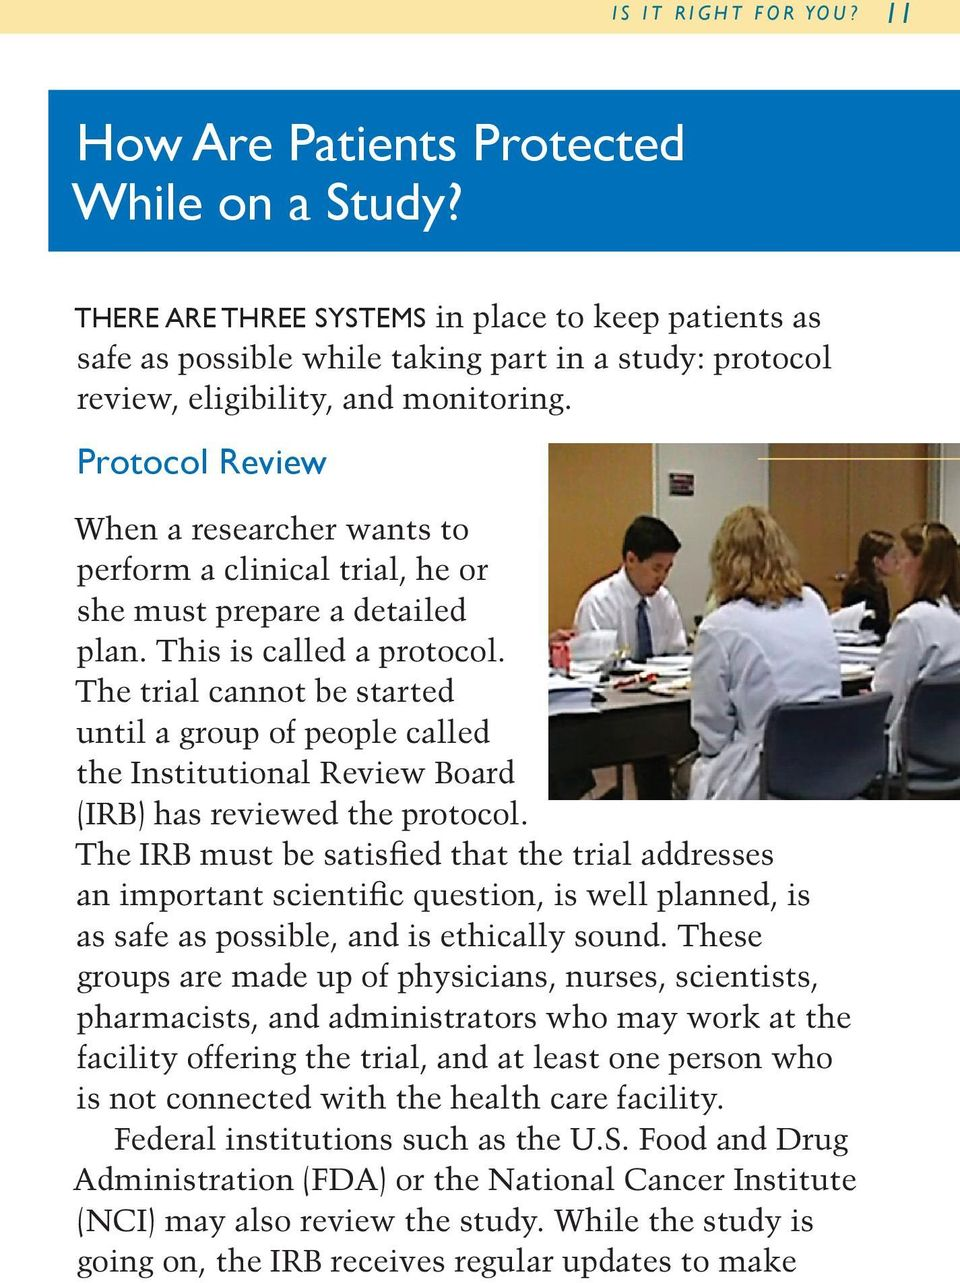 Protocol Review When a researcher wants to perform a clinical trial, he or she must prepare a detailed plan. This is called a protocol.